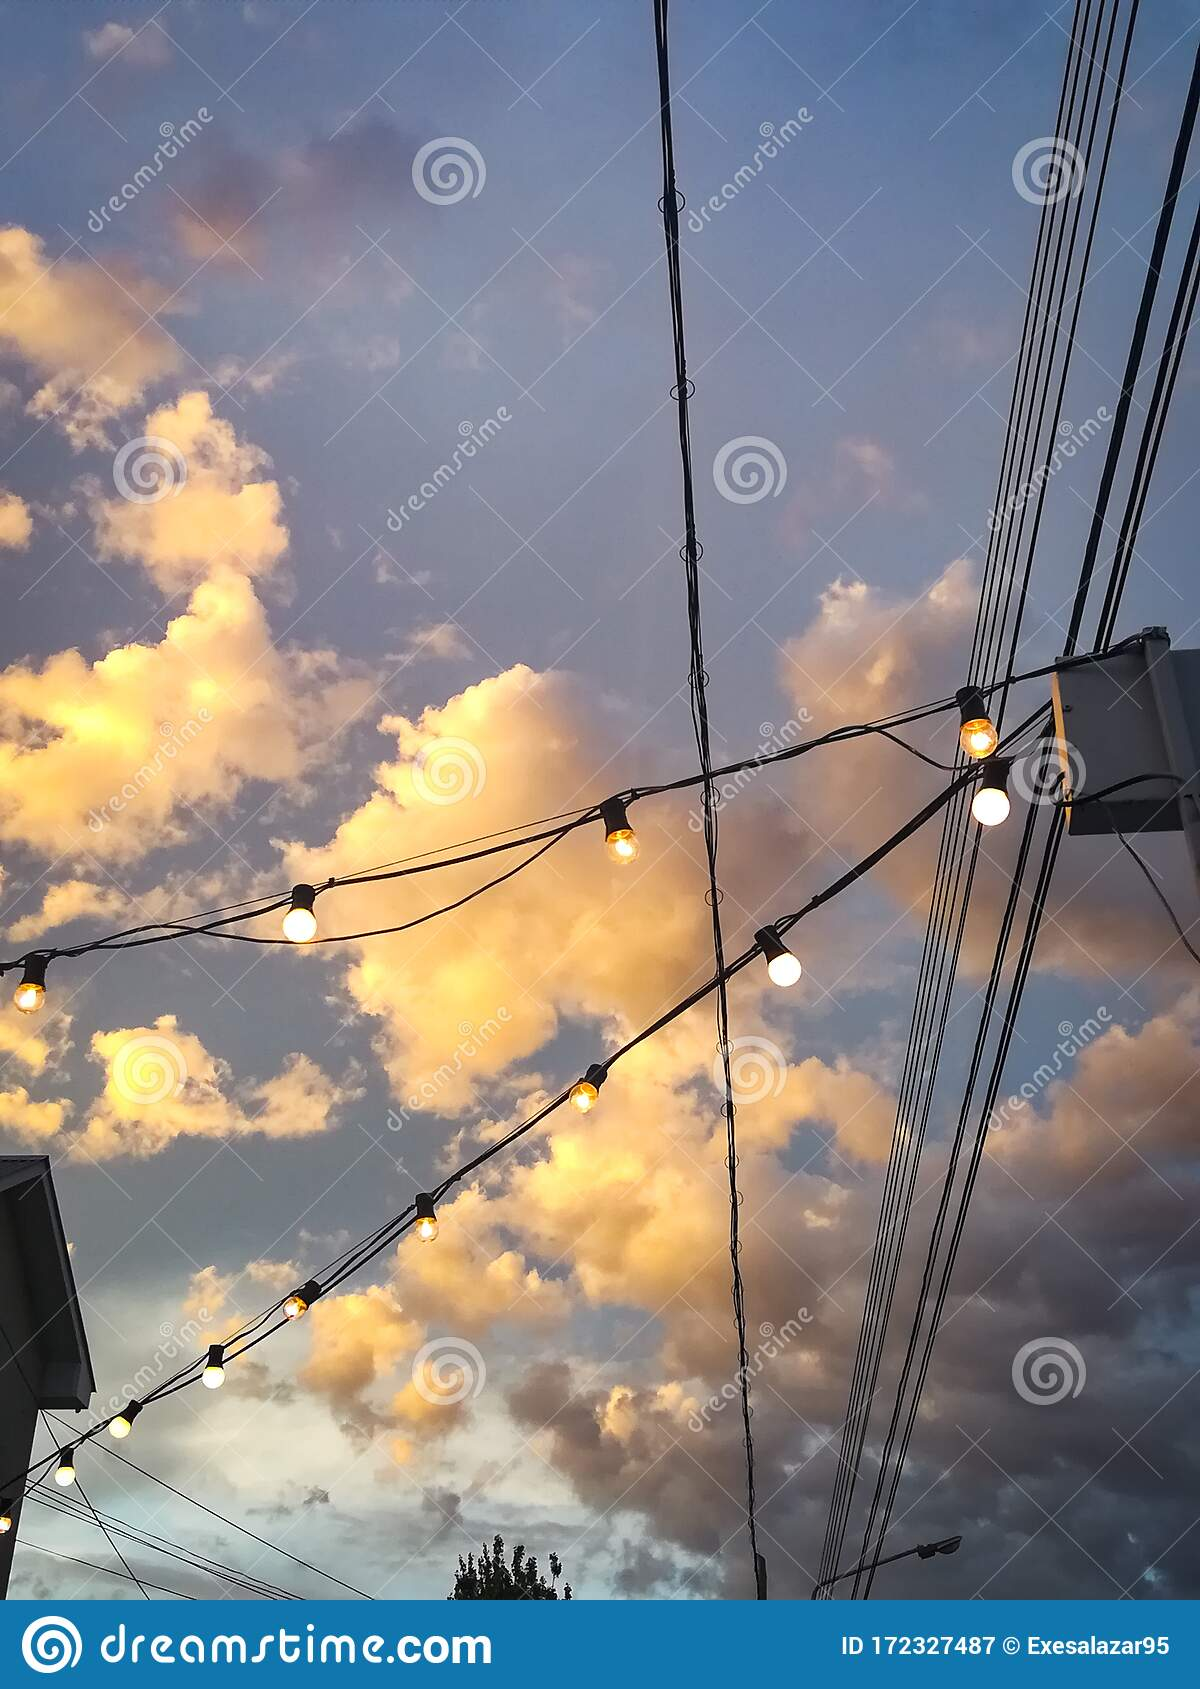 blue sky pink orange clouds aesthetic tumblr background wallpaper fairy lights 172327487